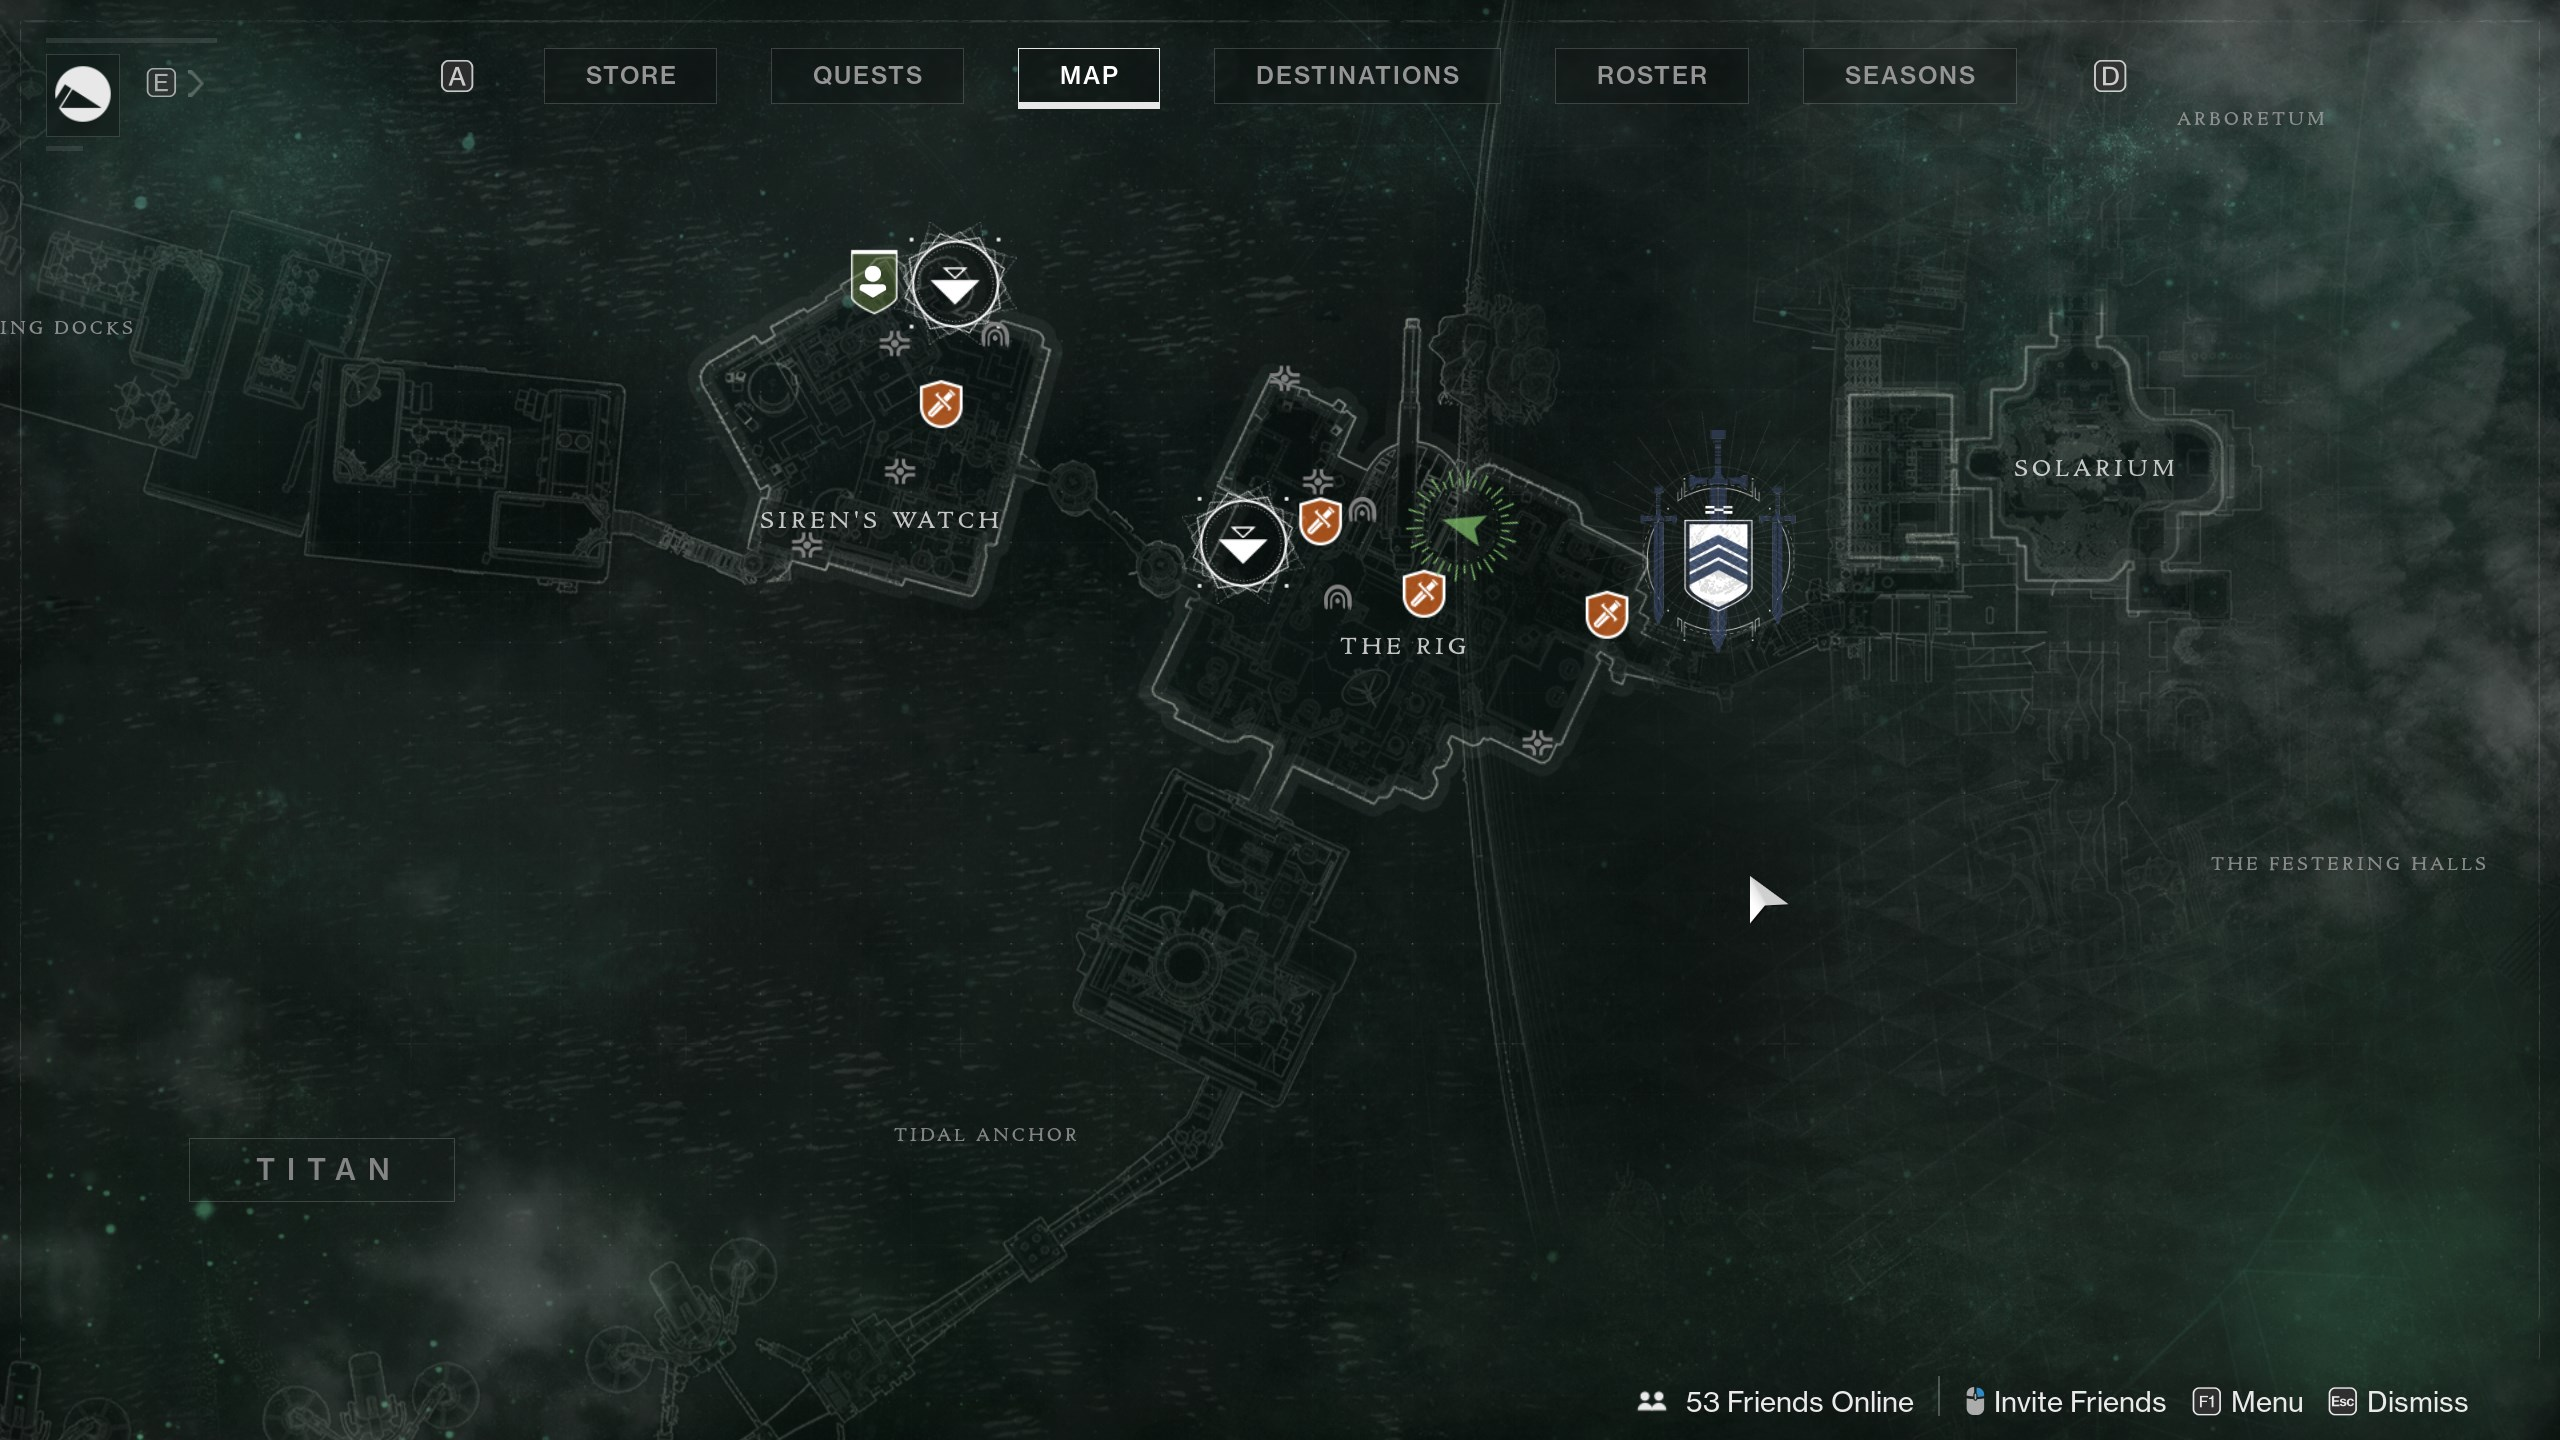 Xur location and wares - October 30, 2020 - destiny 2